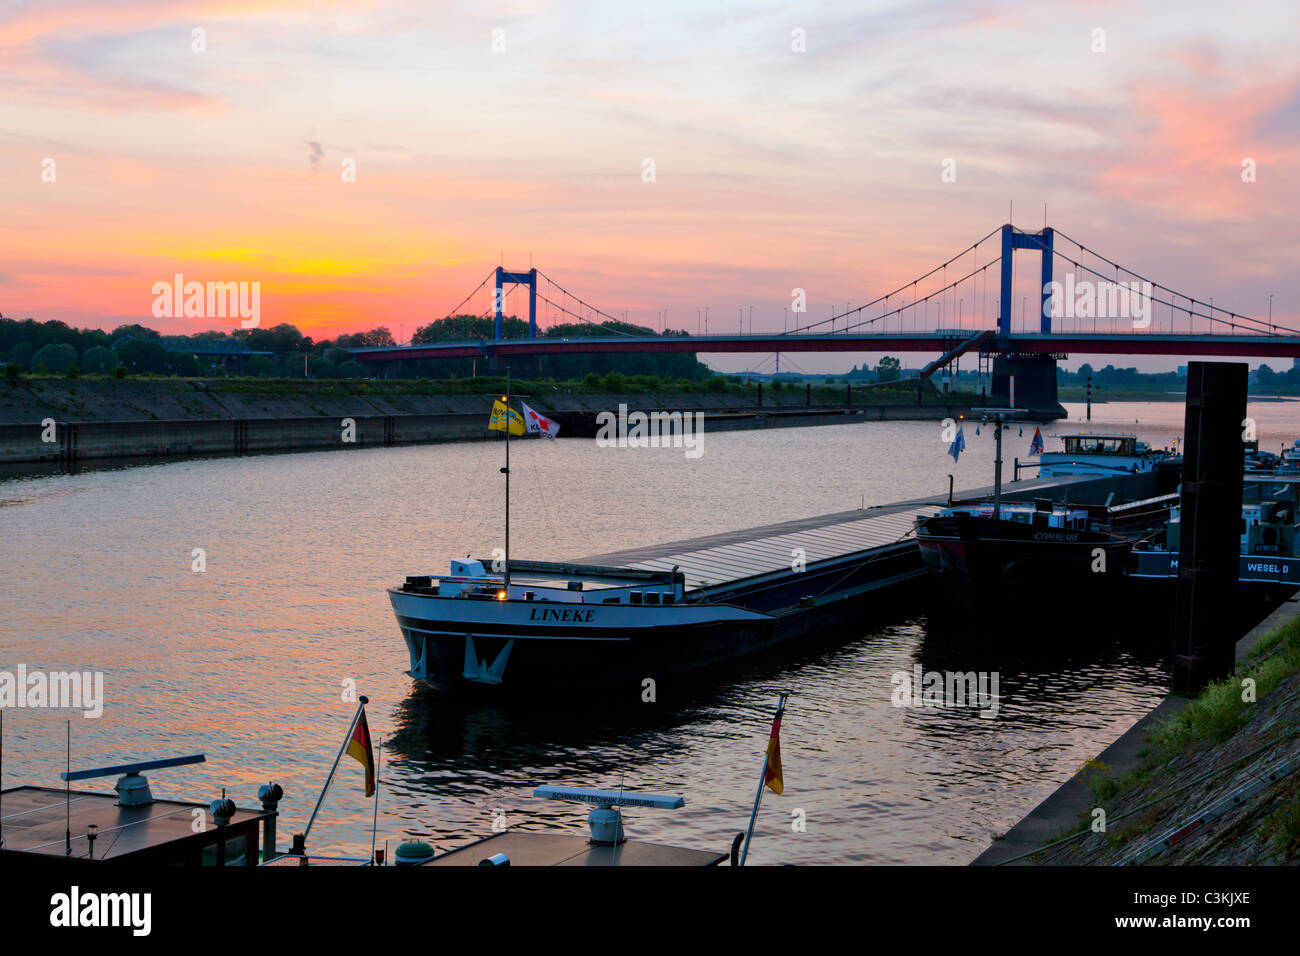 freight ships at the harbor of Duisburg-Ruhrort at sunset - Stock Image